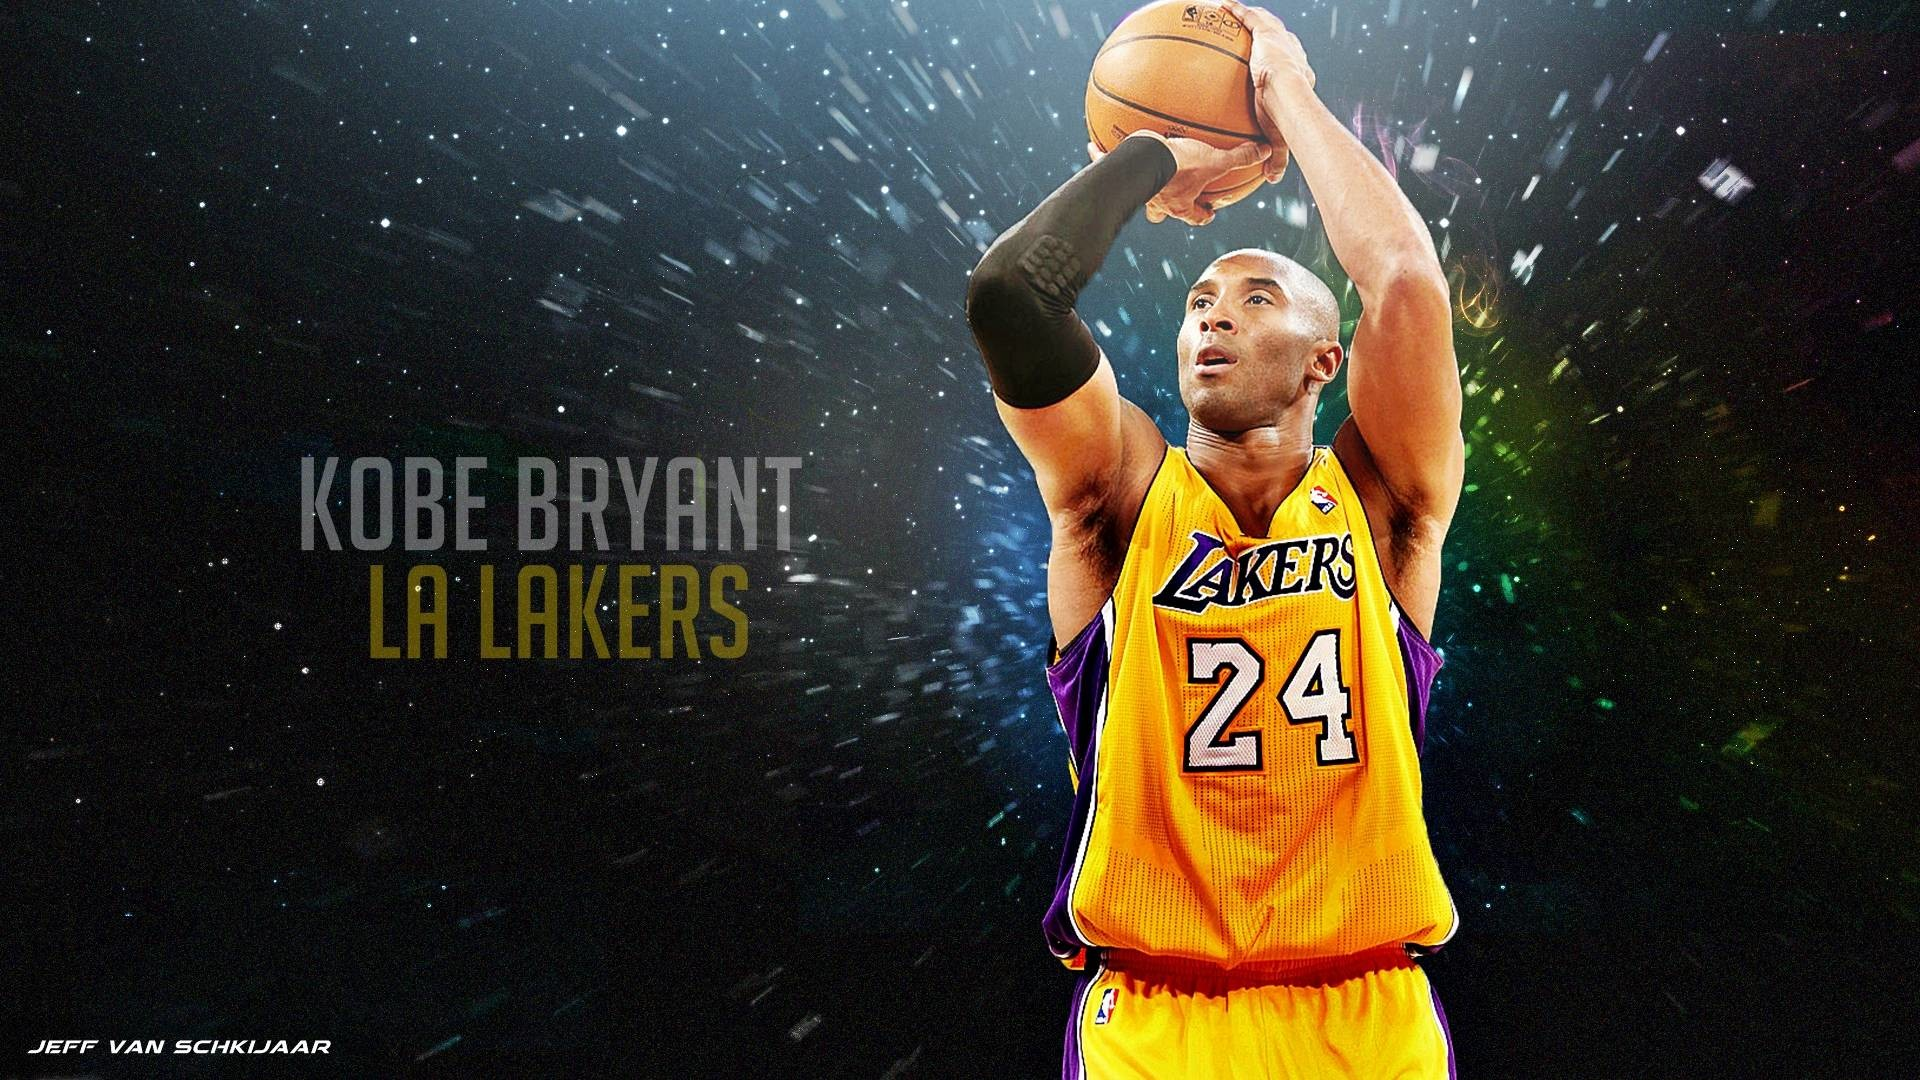 Lakers Wallpaper Images on